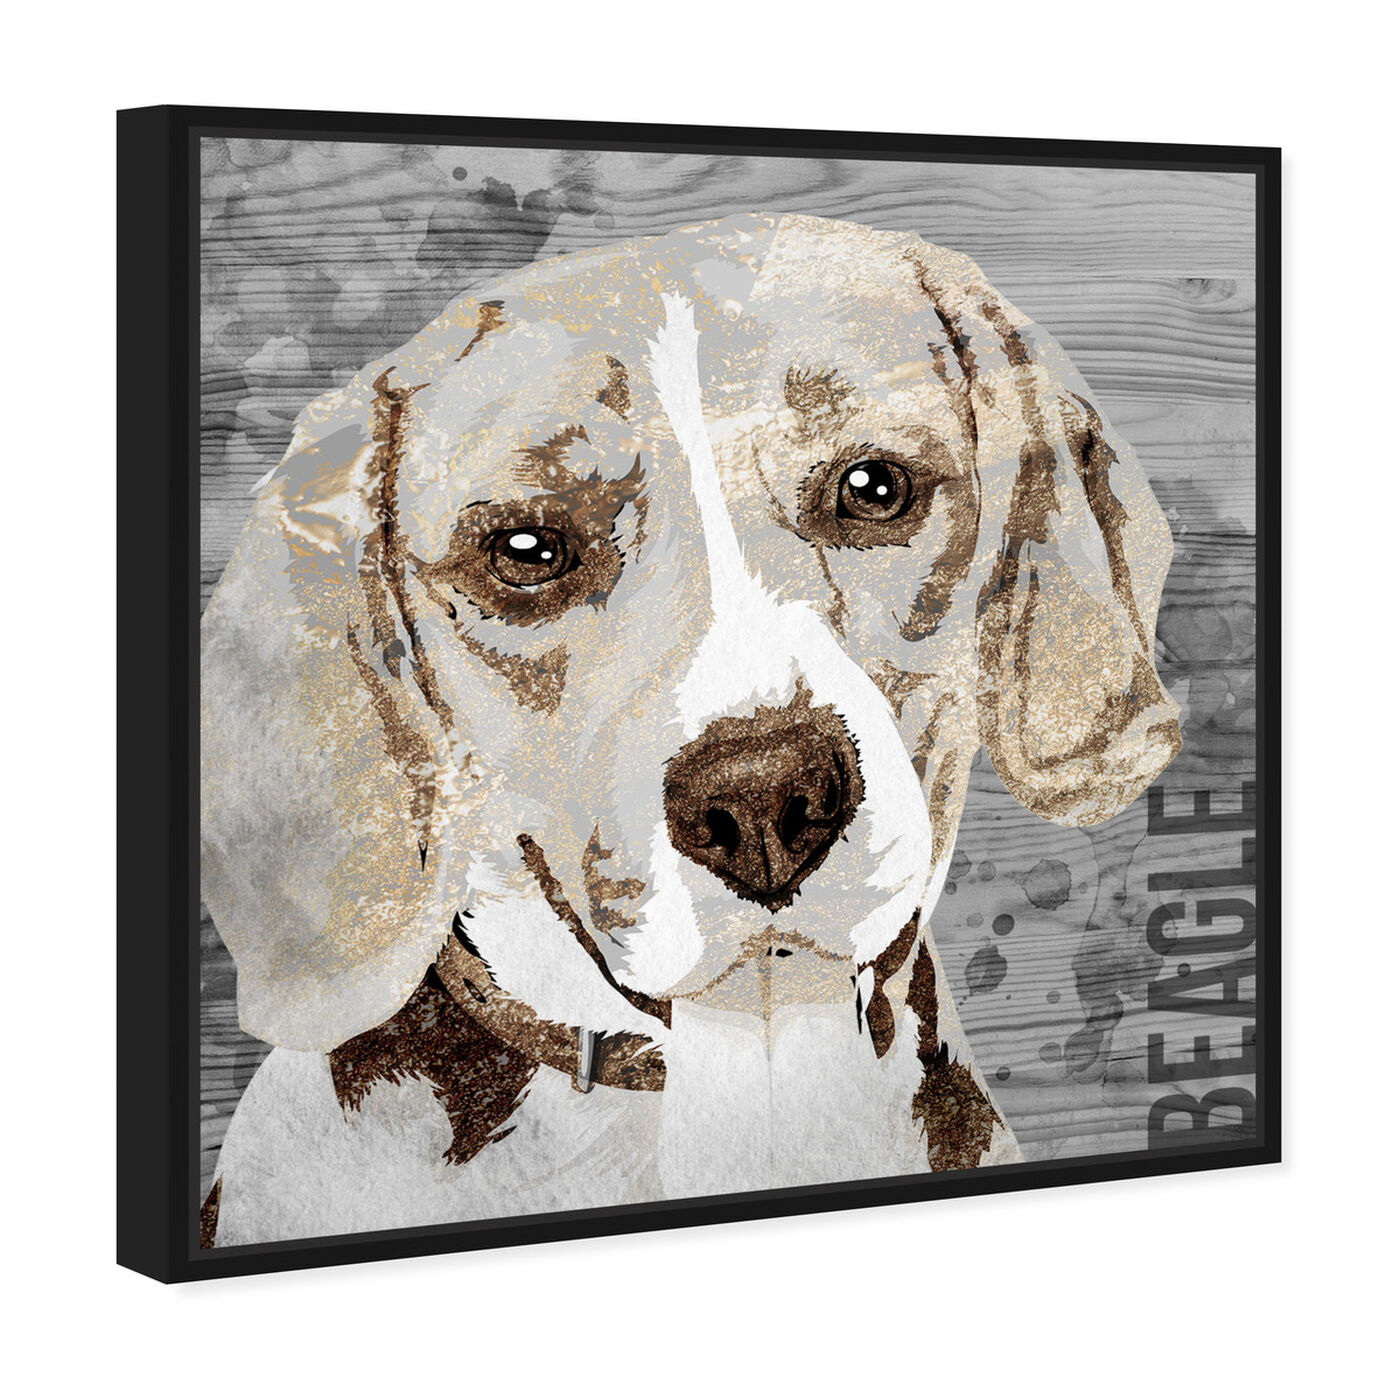 Angled view of Love My Beagle featuring animals and dogs and puppies art.